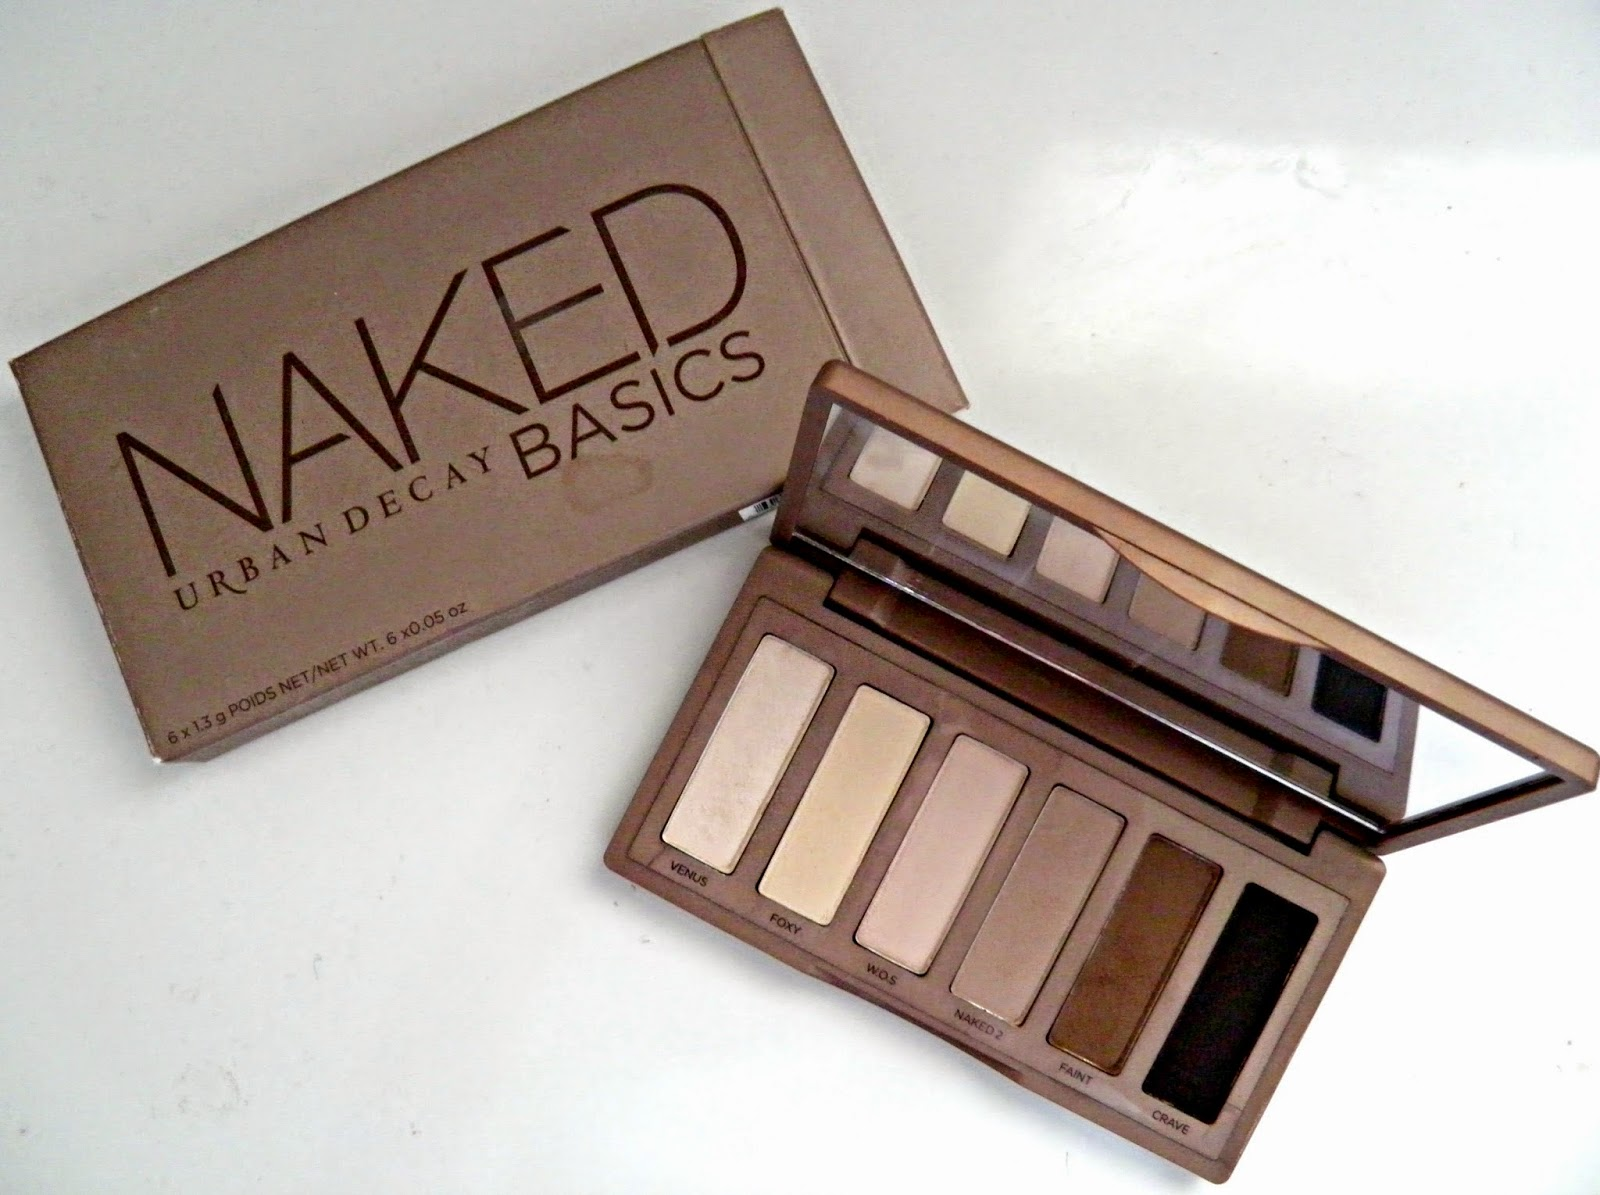 Urban decay naked palette review images 23